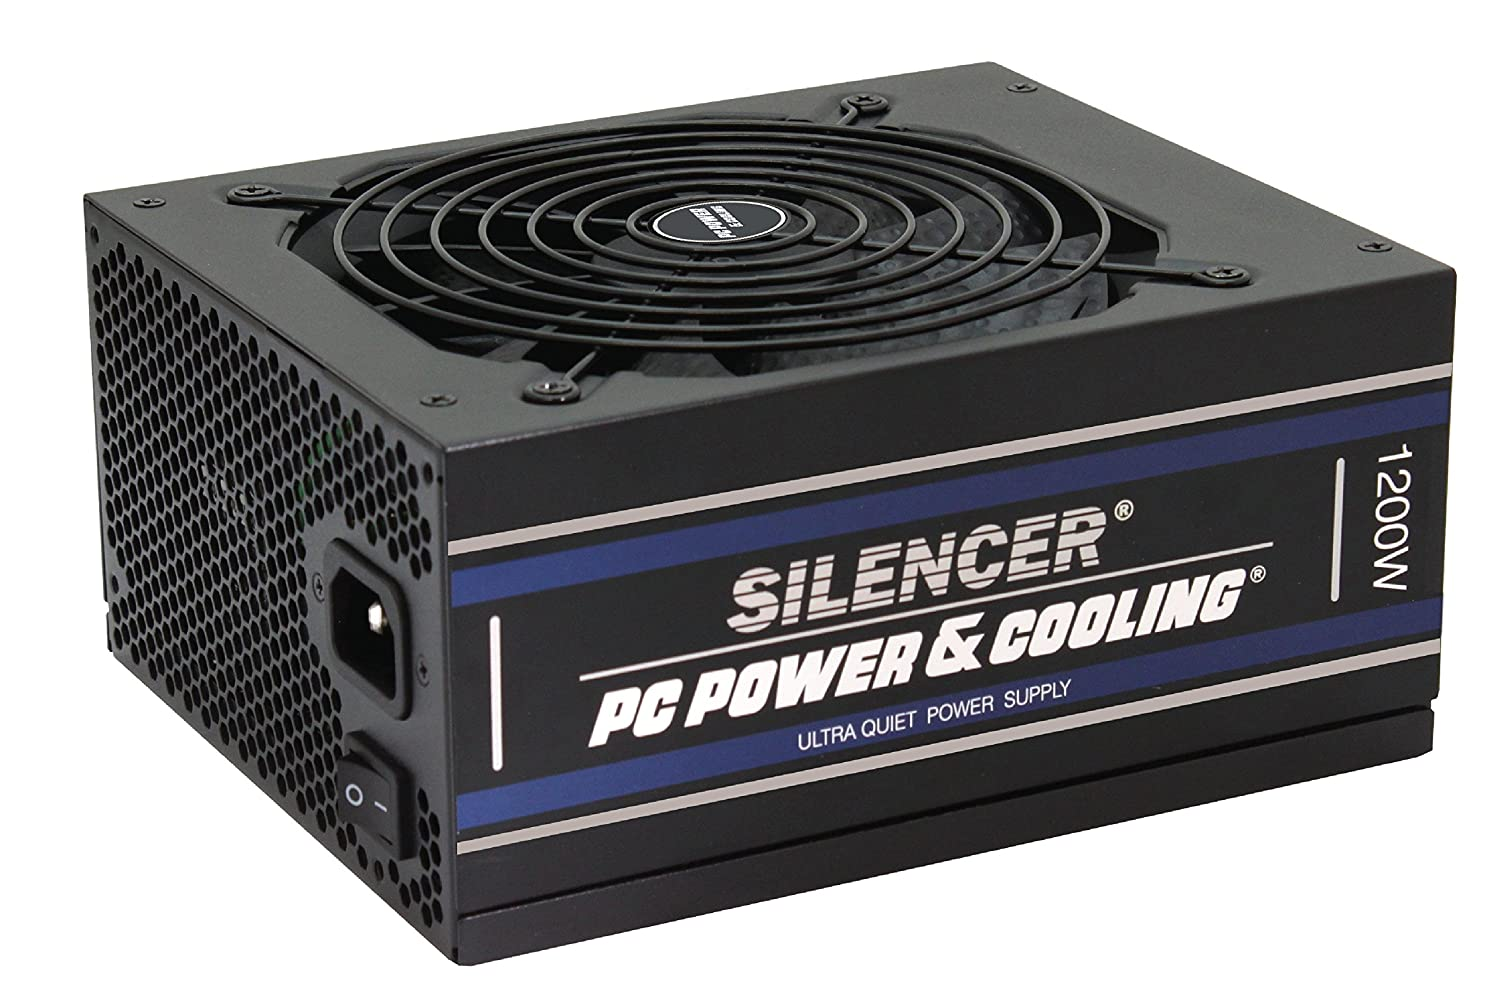 PC Power & Cooling Silencer Series 1200 Watt, 80 Plus Platinum, Fully-Modular, Active PFC, Ultra Quiet ATX PC Power Supply, 10 Year Warranty, FPS1200-A5M00